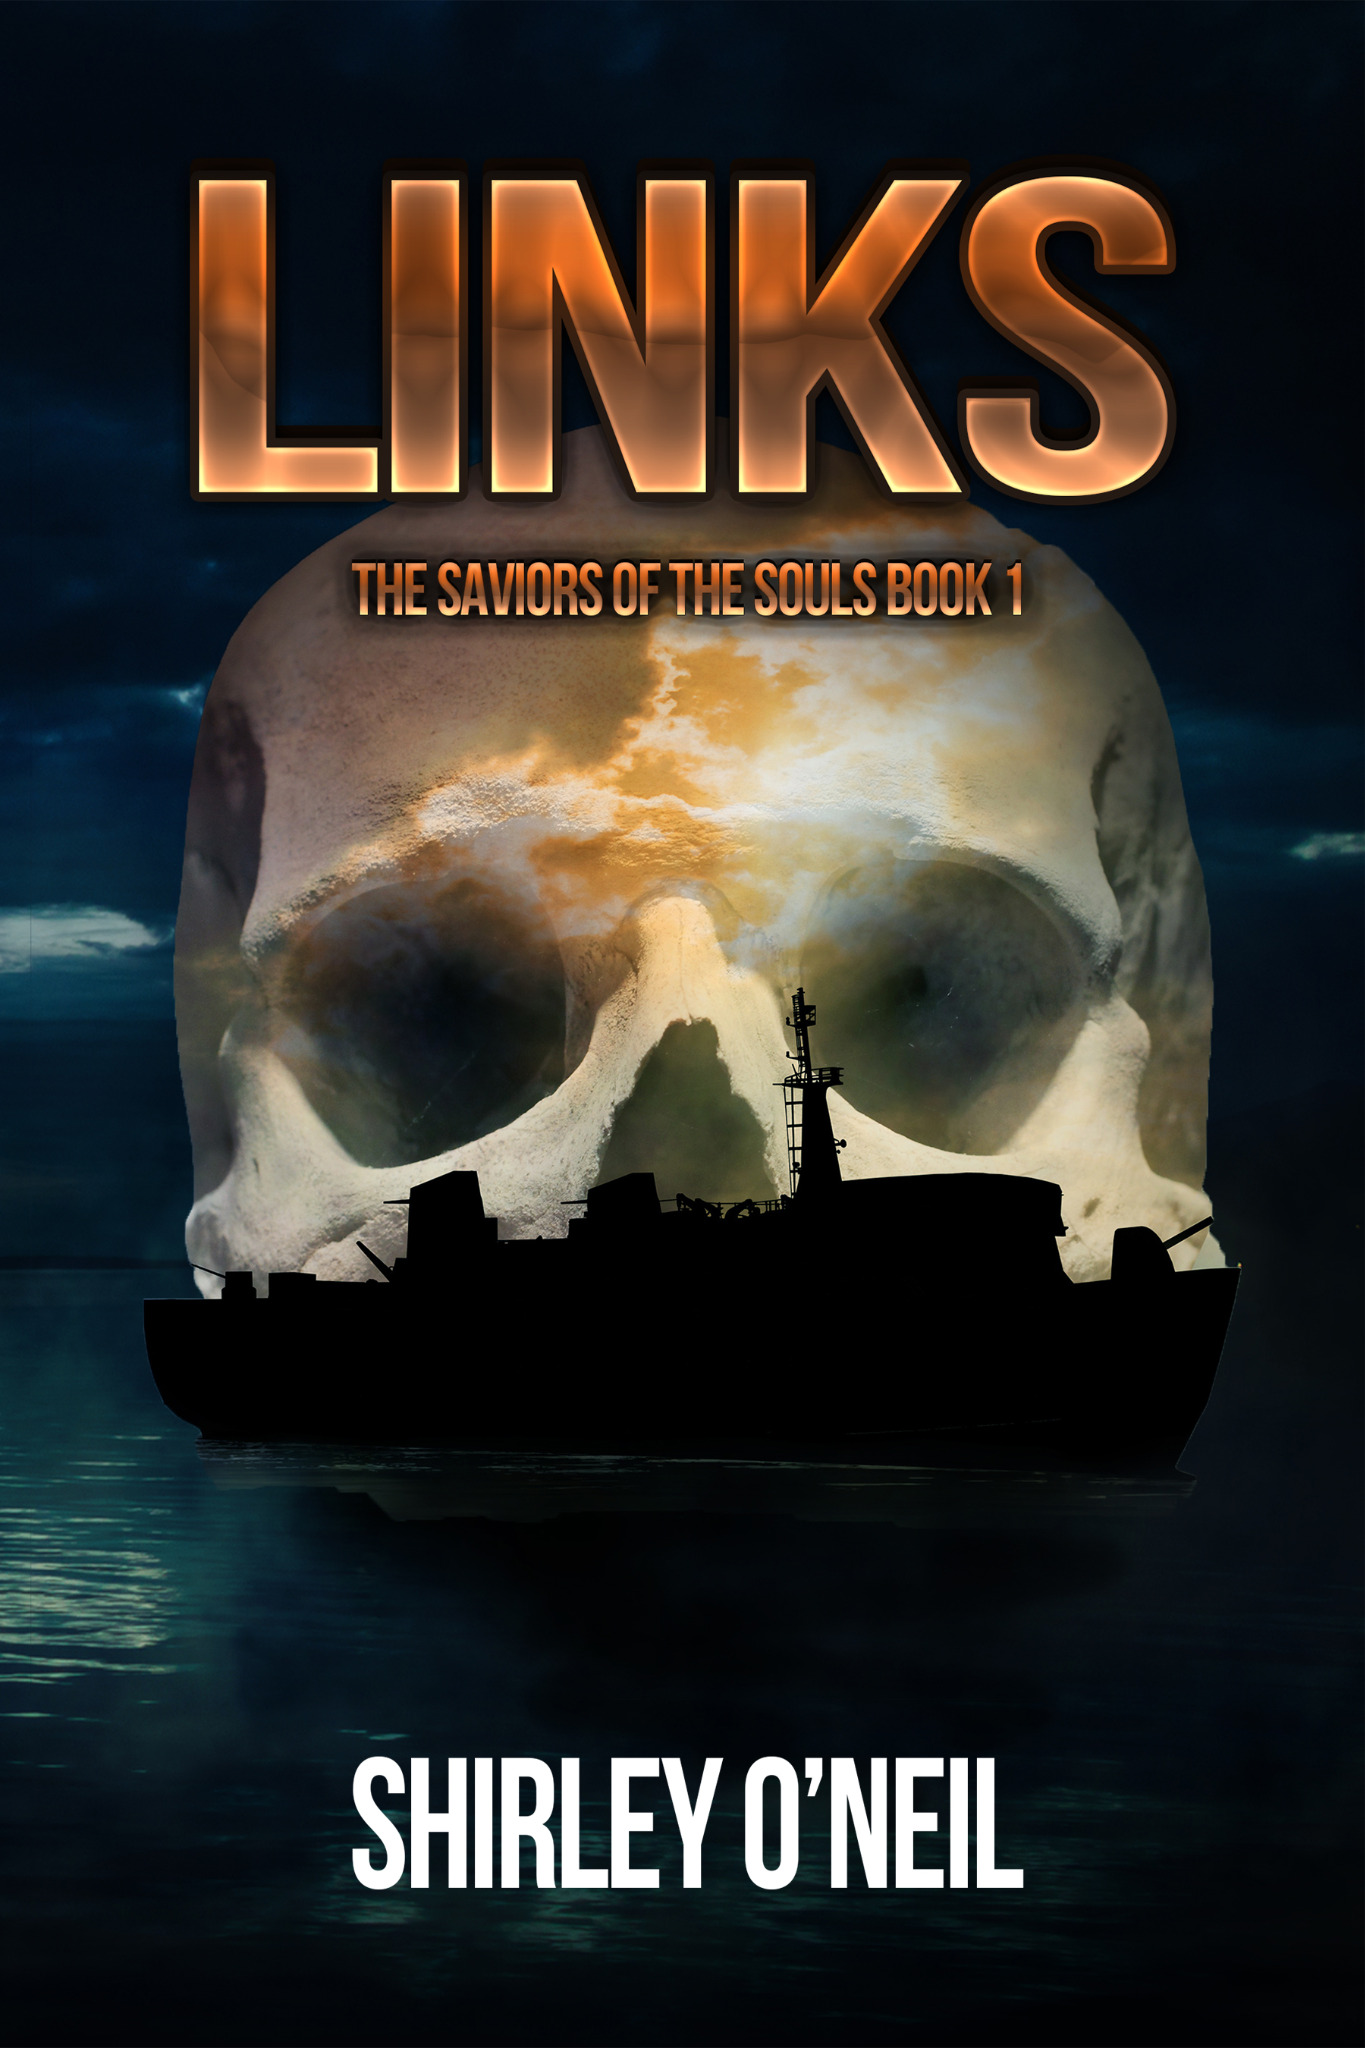 Links - The Saviors of the Souls Book 1